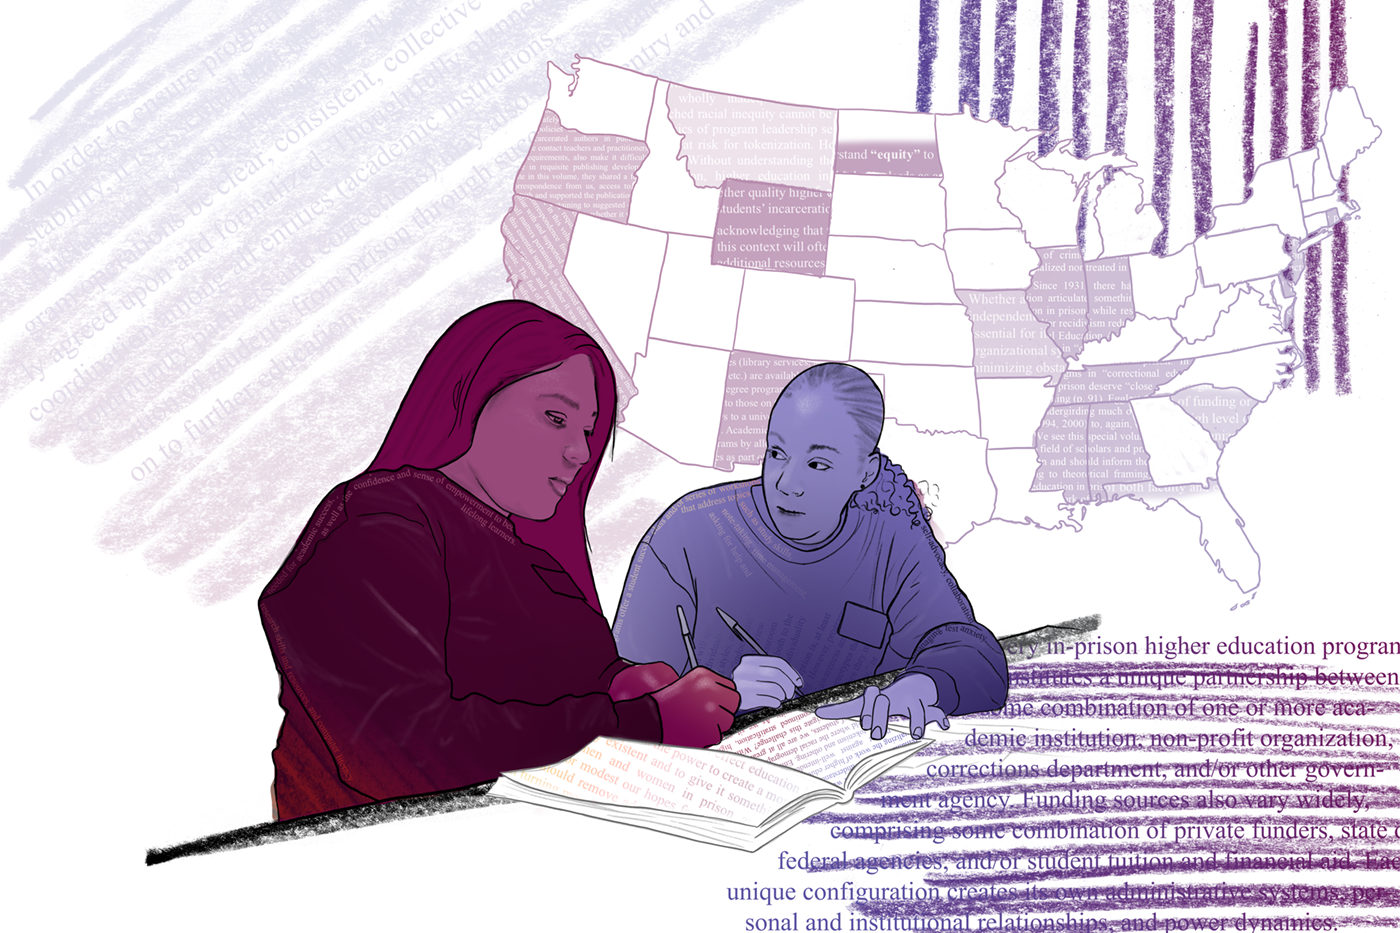 A collage/drawing of two women studying together in a prison classroom with the US map in the background